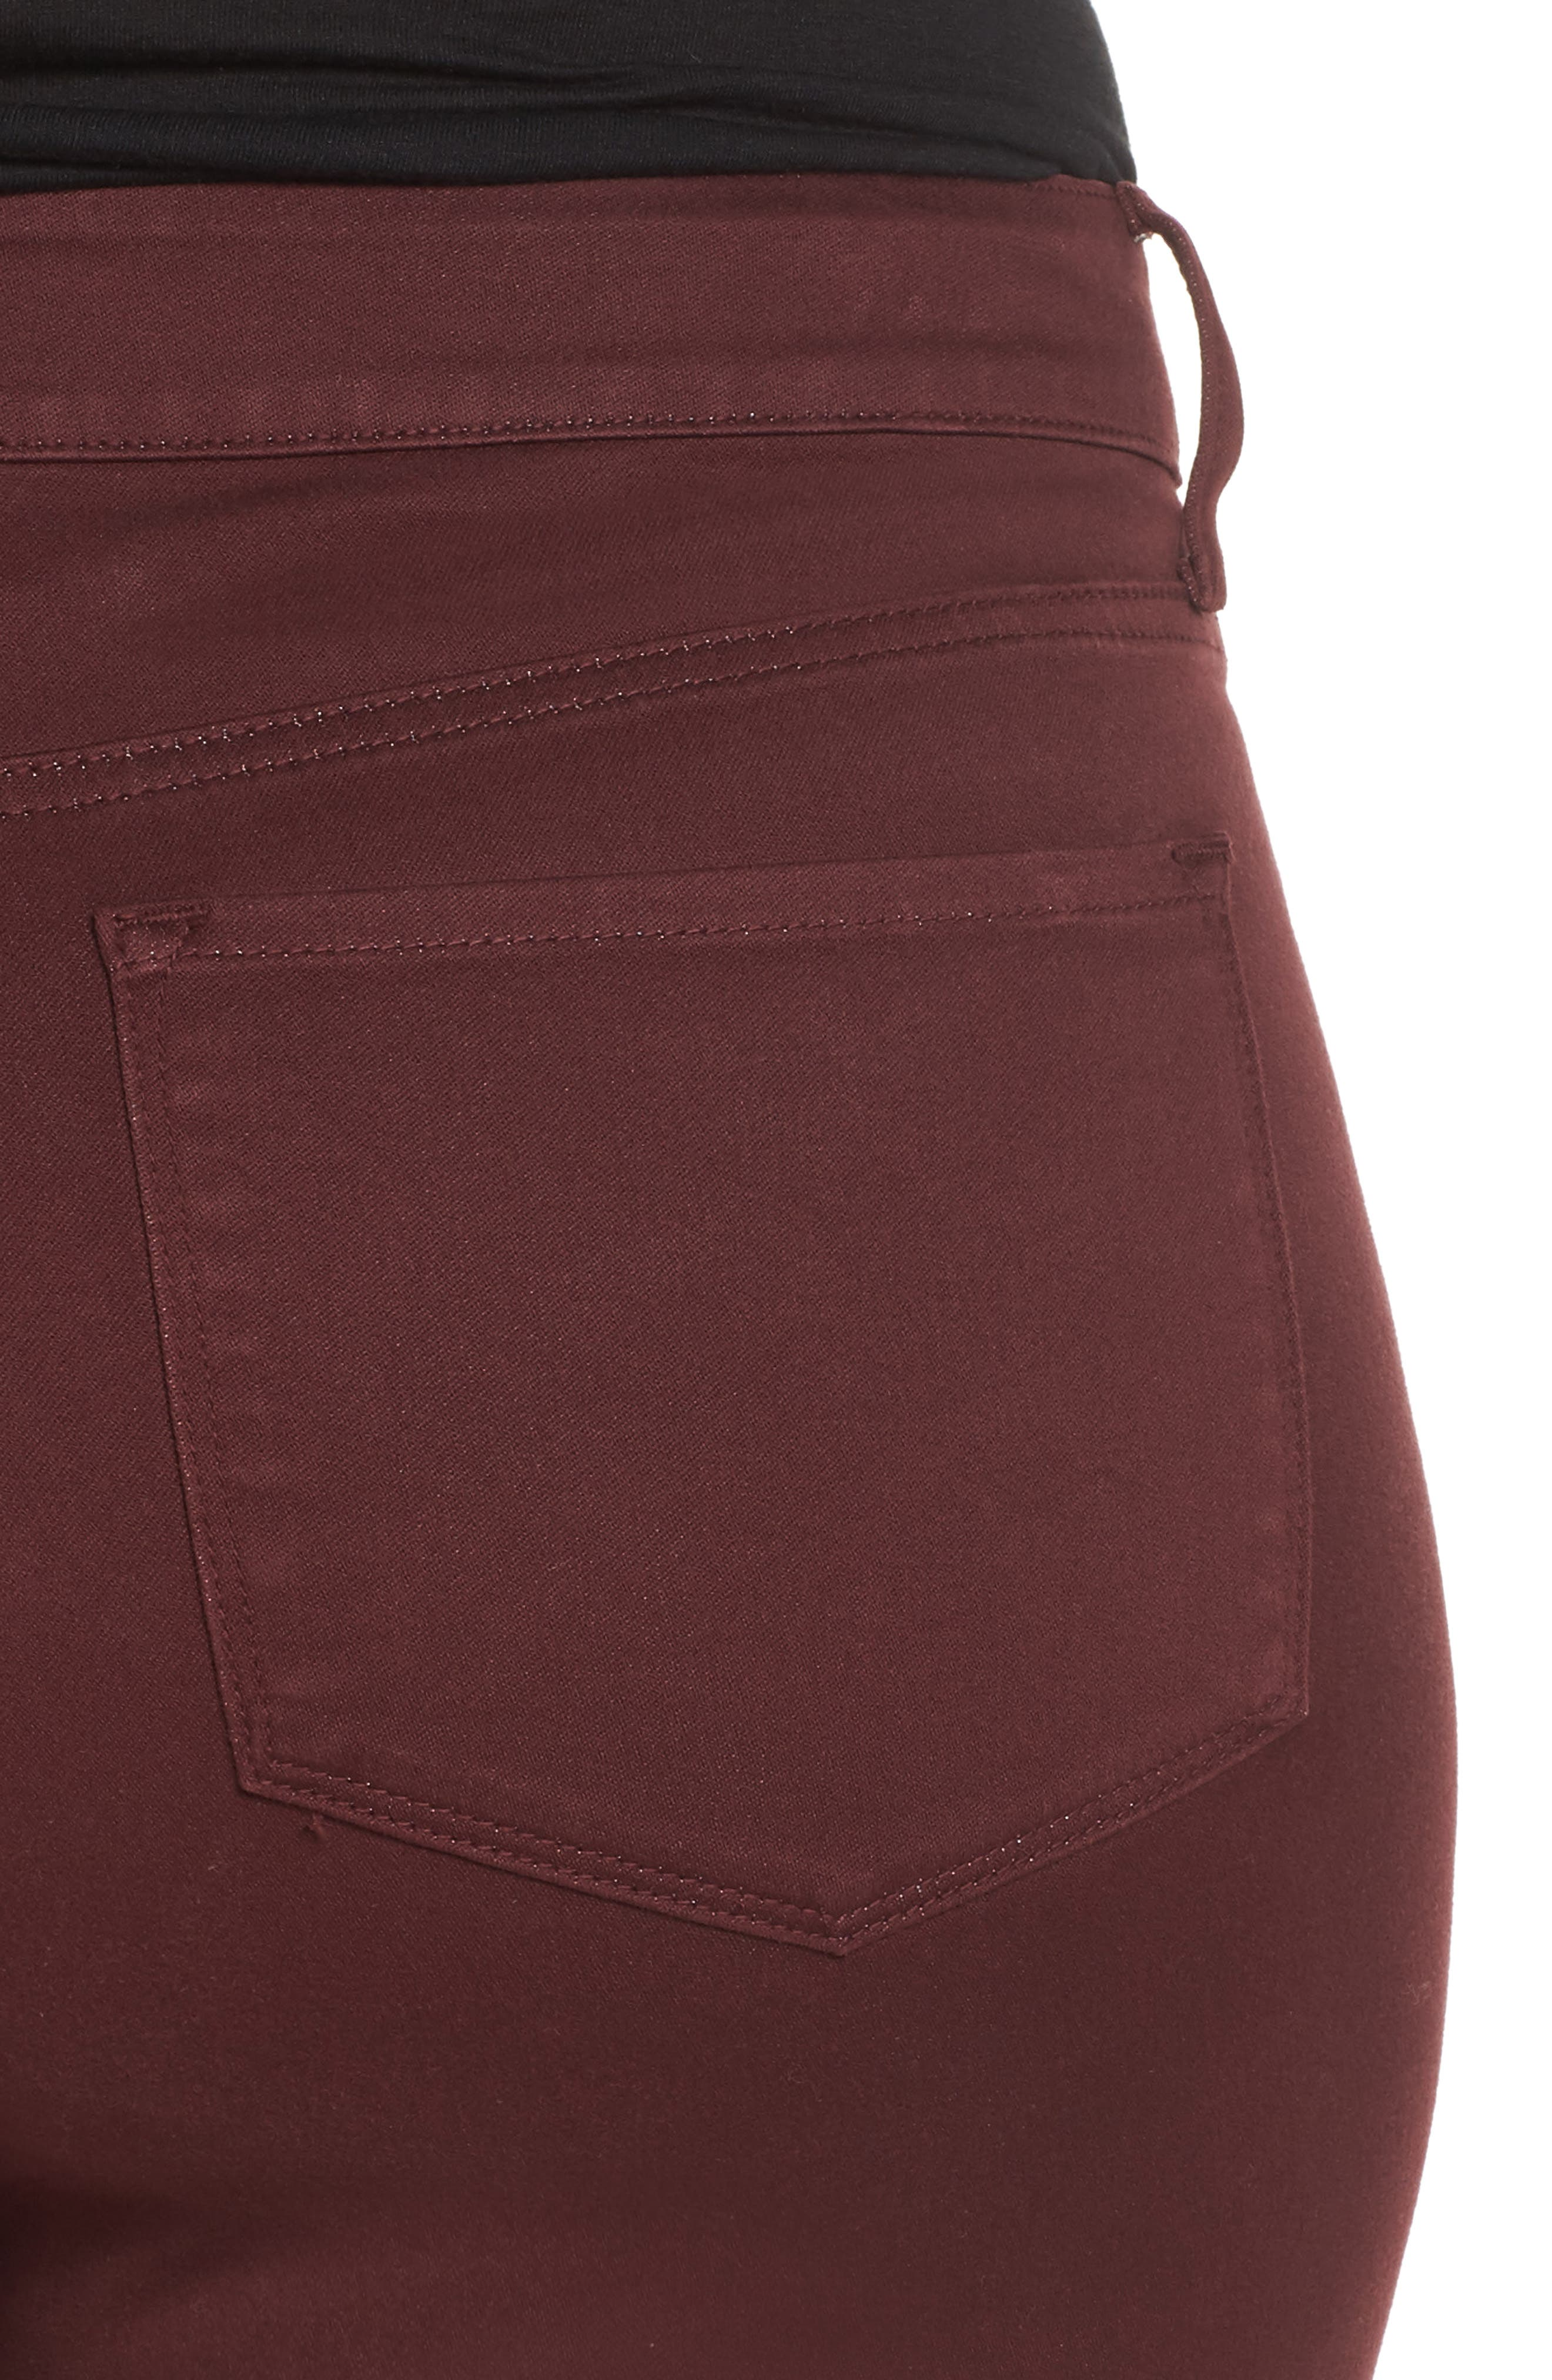 Ami Stretch Skinny Jeans,                             Alternate thumbnail 4, color,                             Deep Currant